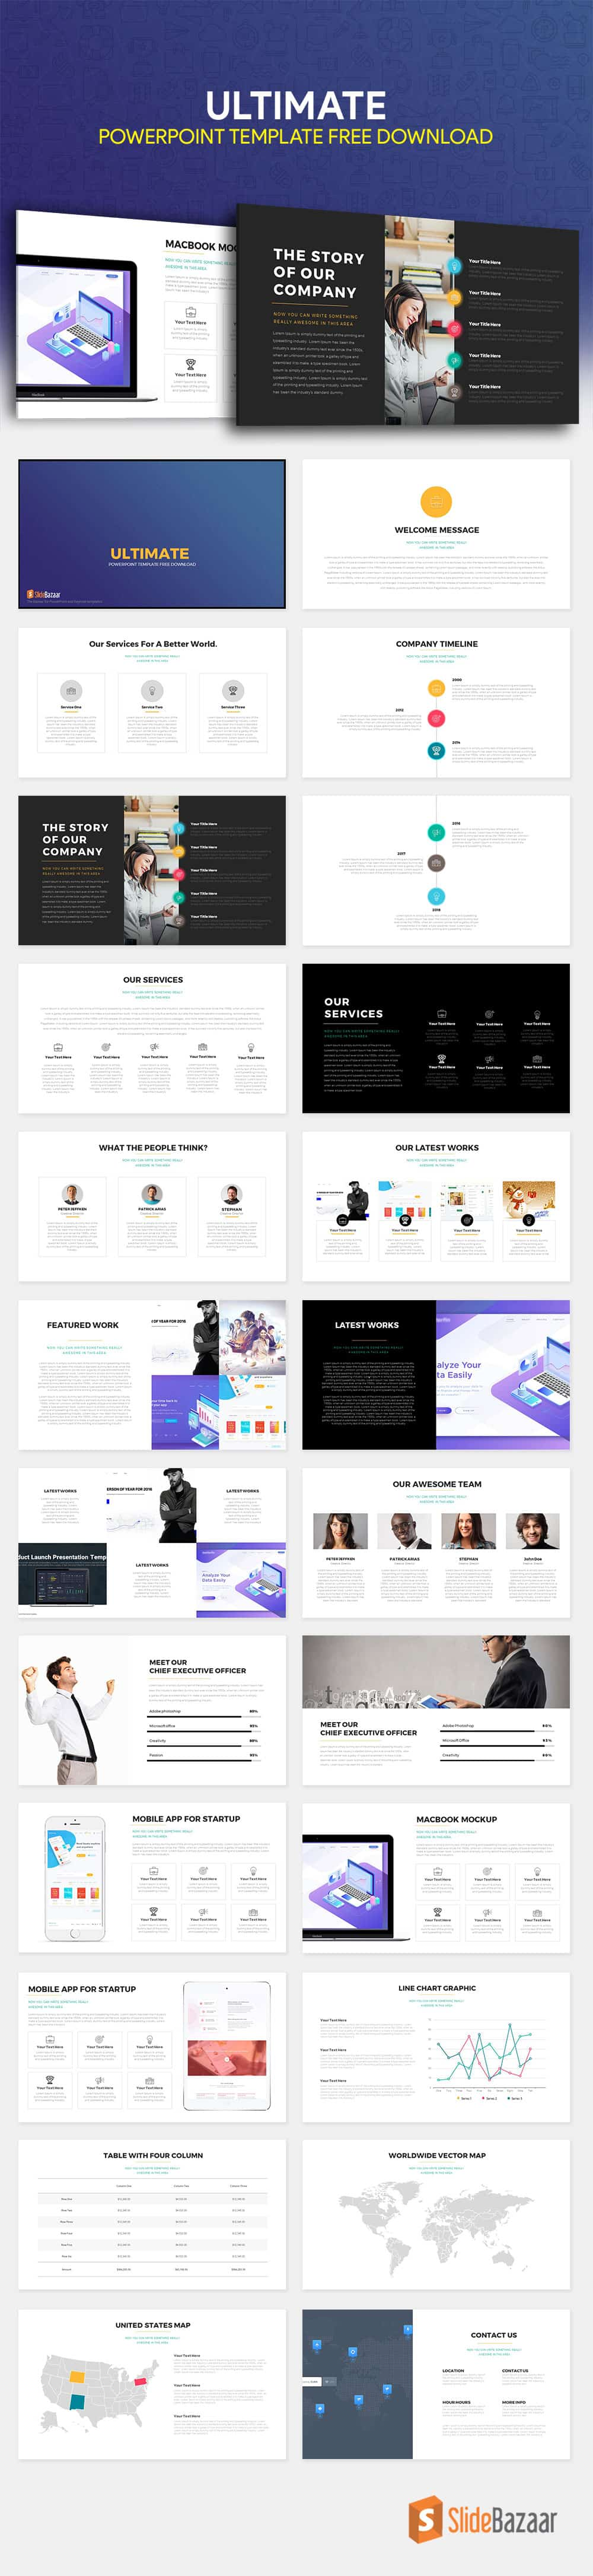 Ultimate PowerPoint Template Free Download